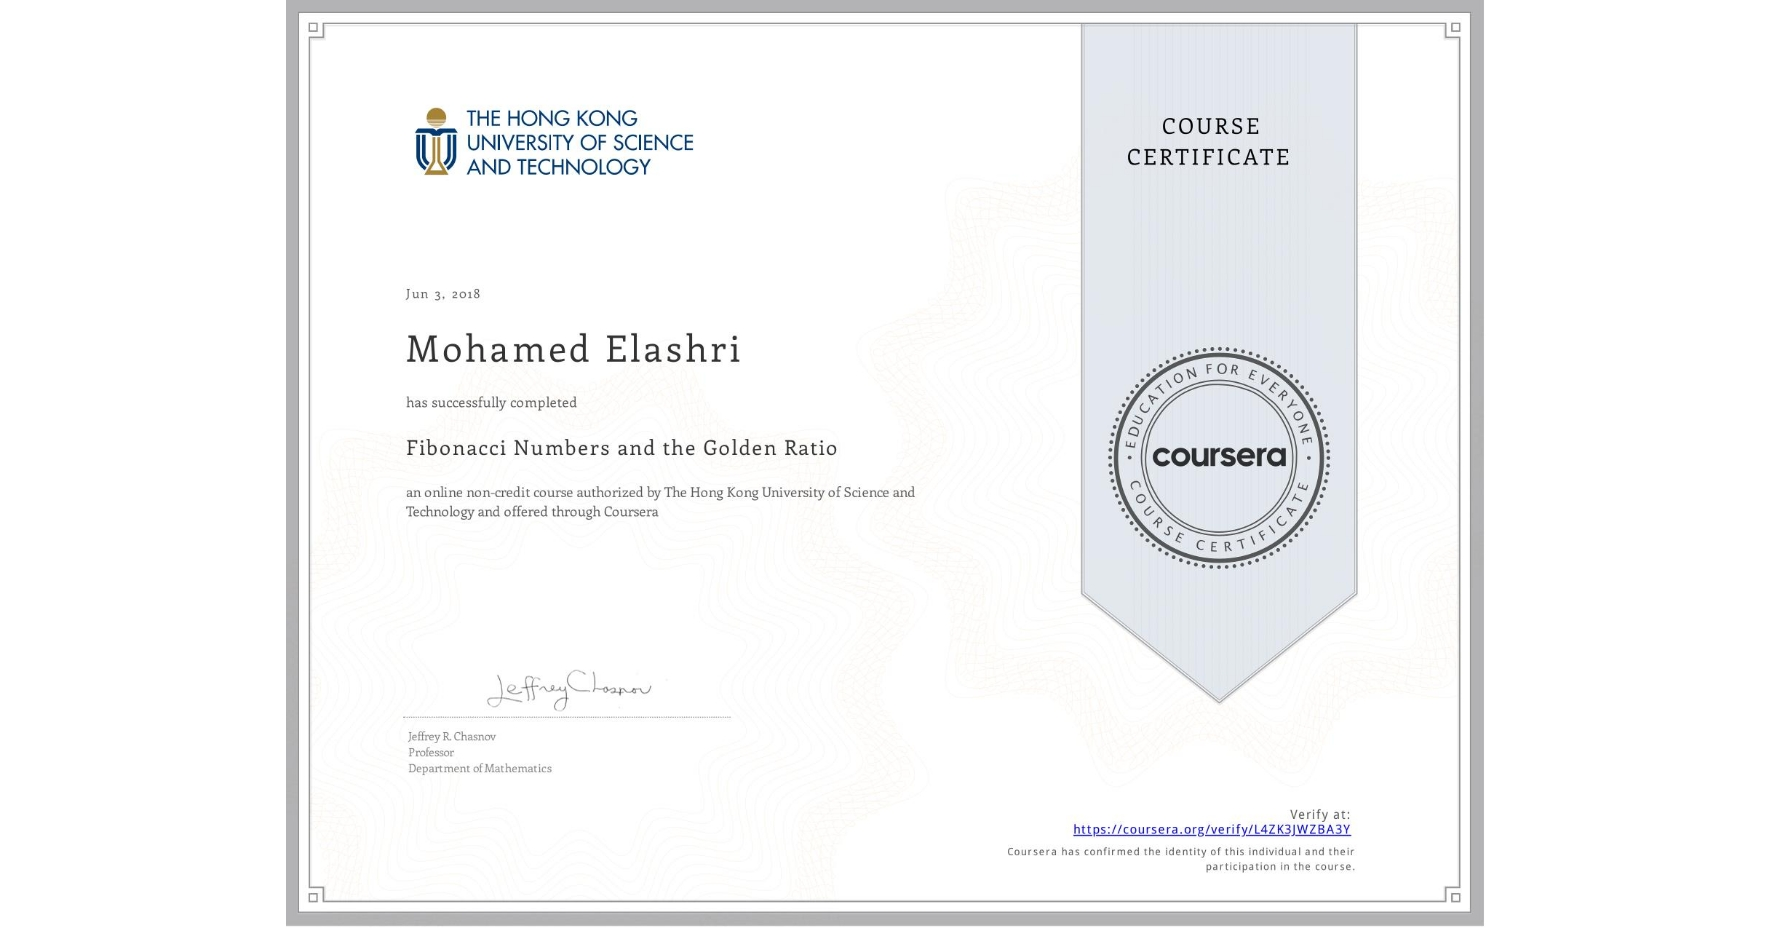 View certificate for Mohamed Elashri, Fibonacci Numbers and the Golden Ratio, an online non-credit course authorized by The Hong Kong University of Science and Technology and offered through Coursera